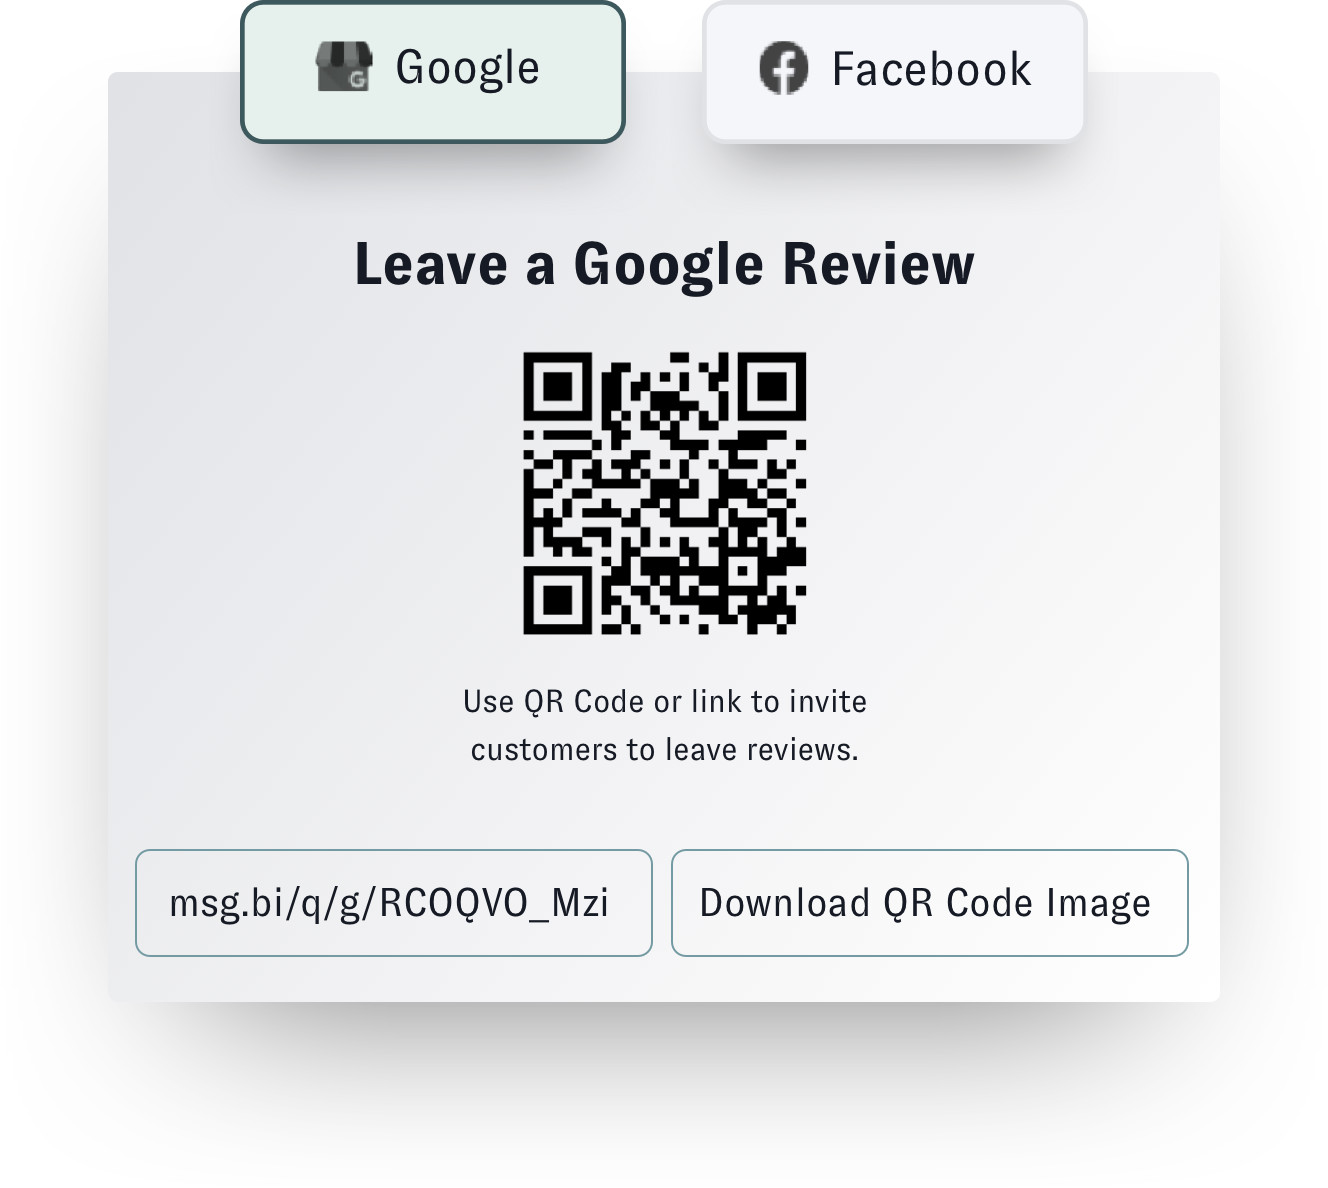 Nuvi Review lets you send a QR code in text to email to clients or print it out and set it up around a physical location. This makes it easy for clients to leave a review. This image is titled Leave a Google Review. The QR code is under the title. Above the title are two options to send a client to: Google and Facebook. They hover above the main box in their own, round edge boxes. The Facebook box is grey, while the Google on is light green, indicating it was selected. Below the QR code is the message: Use QR Code or link to invite customer to leave reviews. Below that are two buttons. The one in the left is a link, the second is an options to download QR Code Image